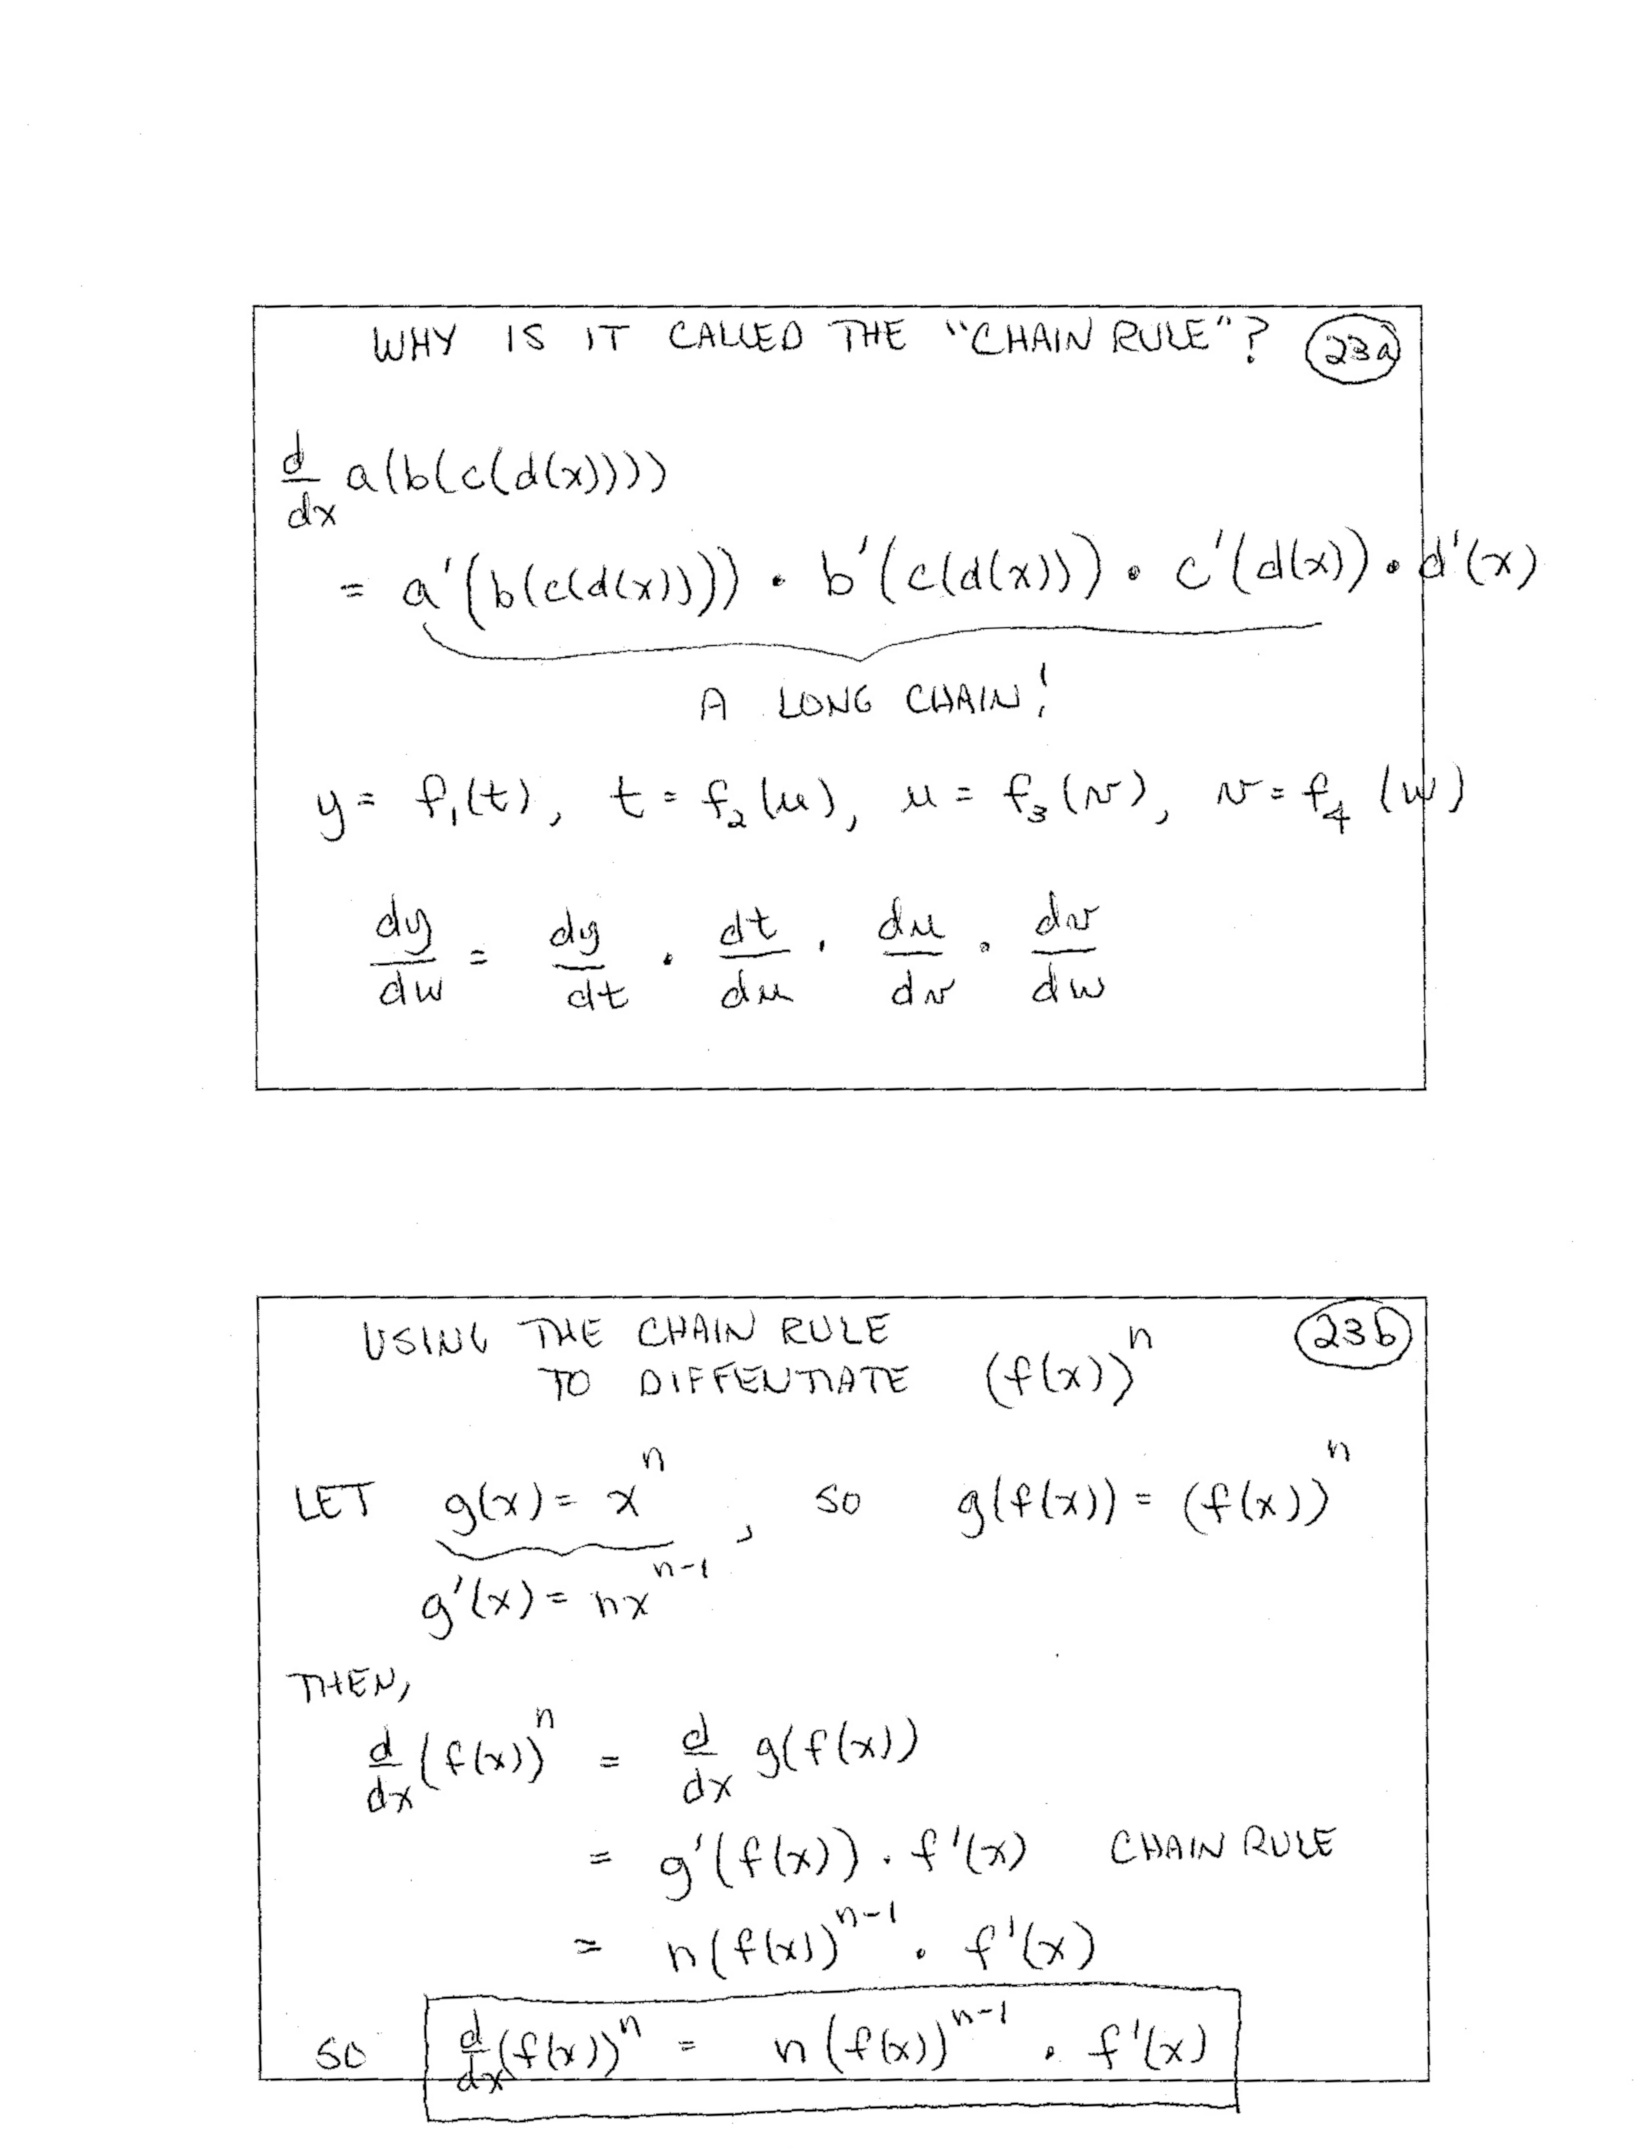 Worksheets Chain Rule Worksheet calculus i mathematics daily syllabus using the chain rule to differentiate